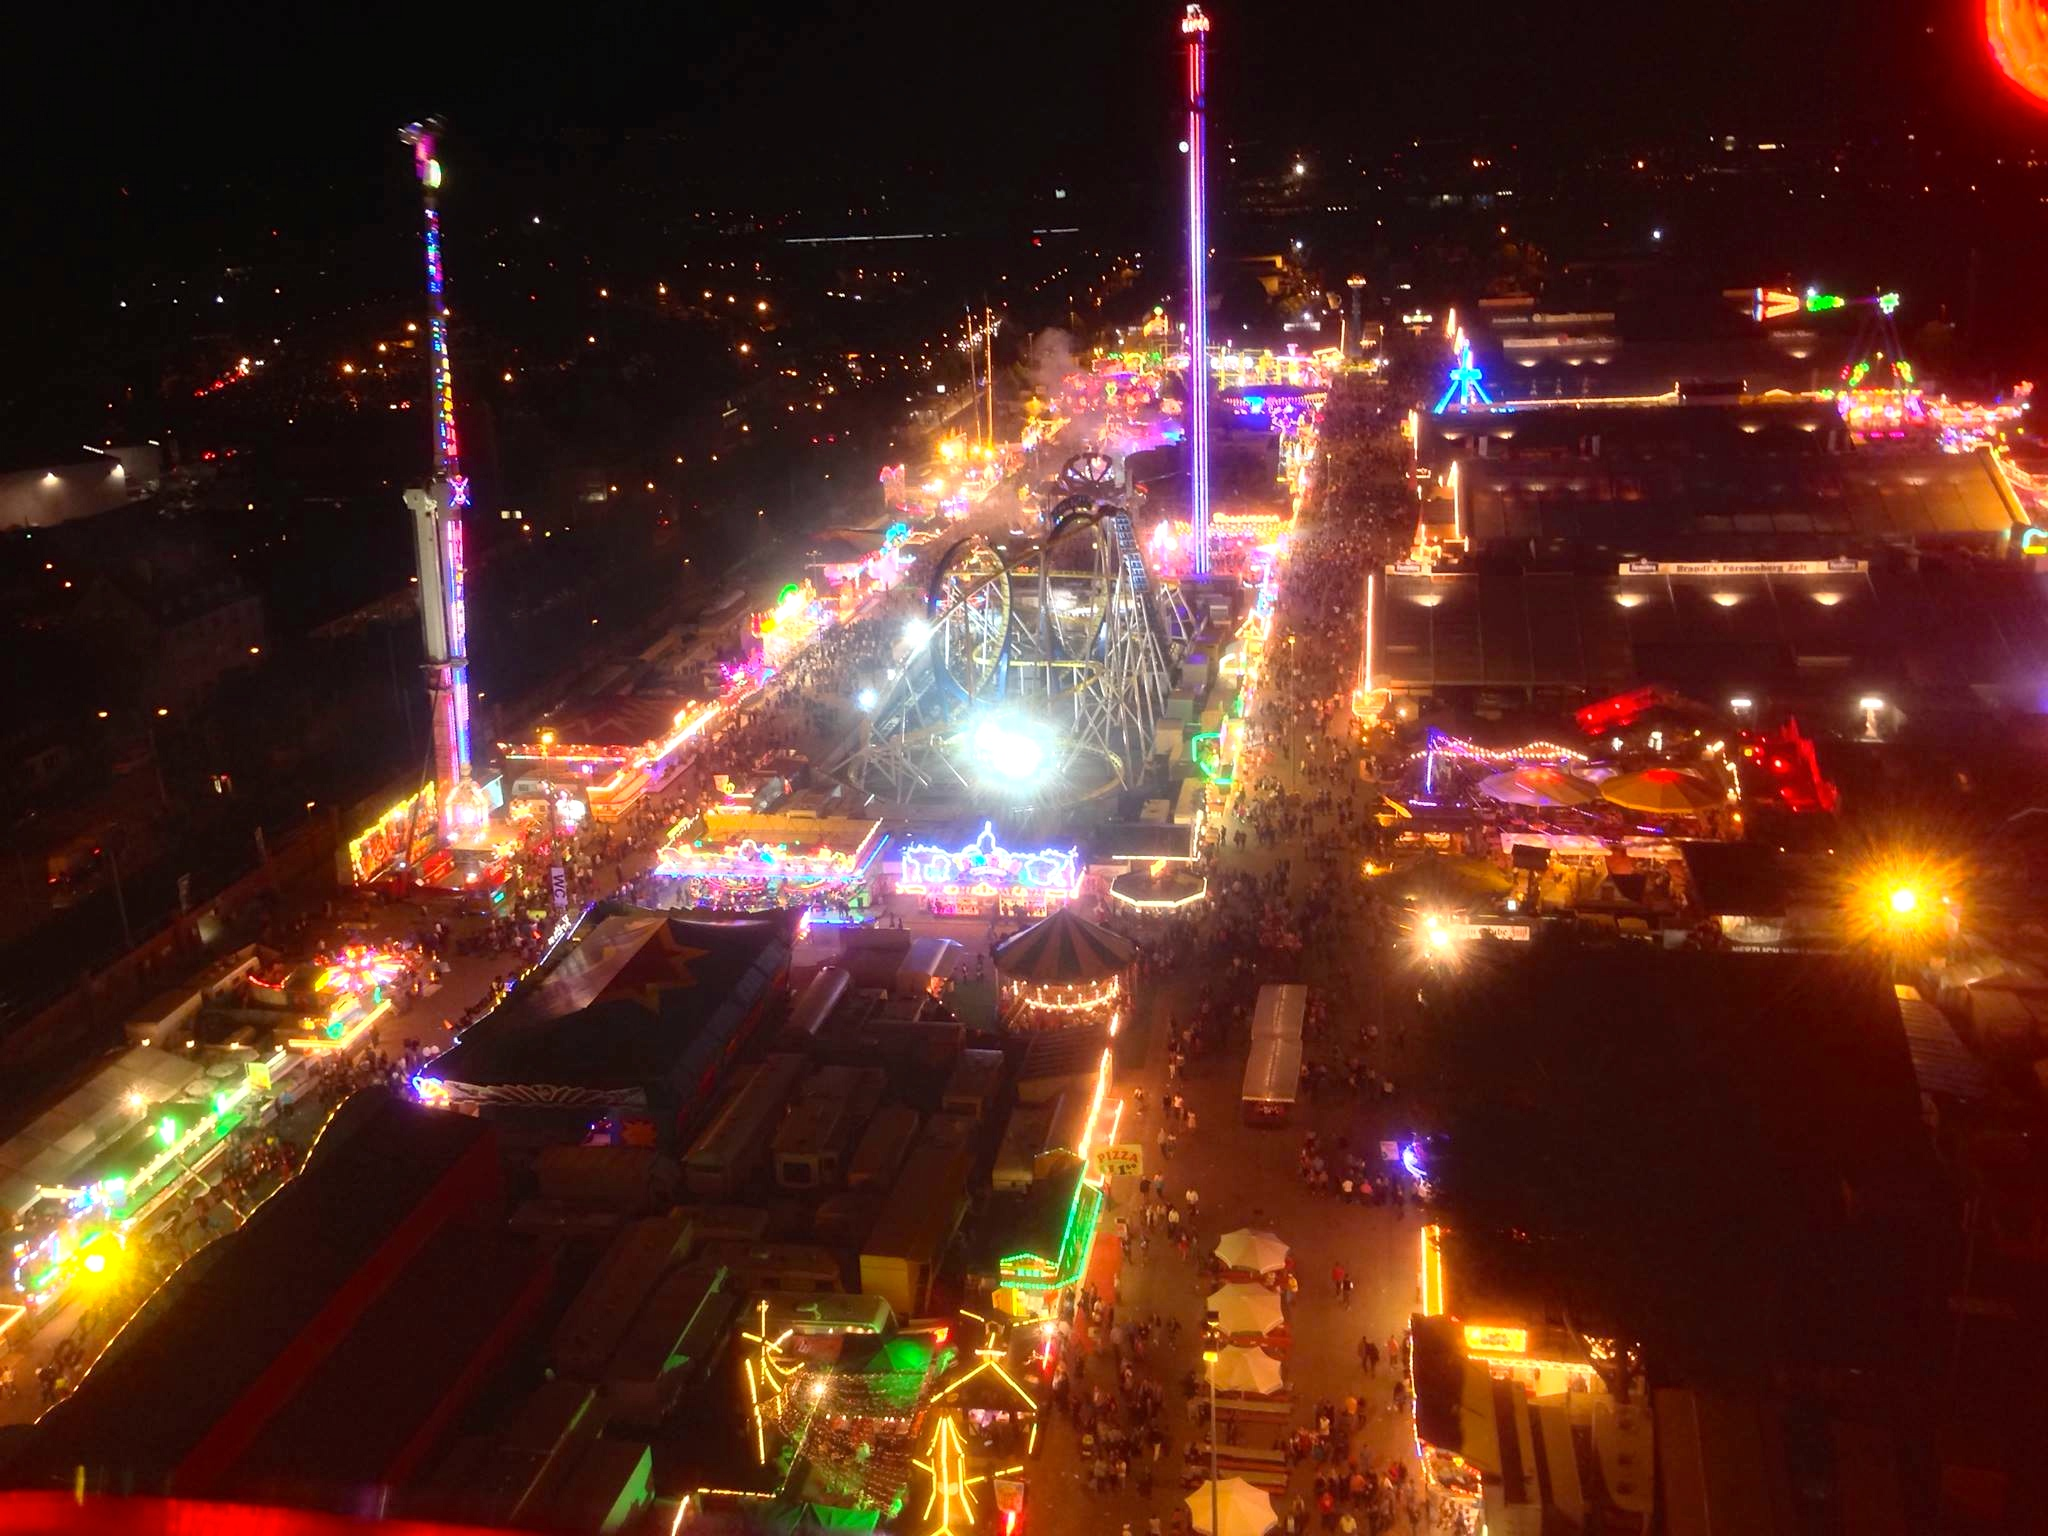 The fairground as seen from the Ferris wheel